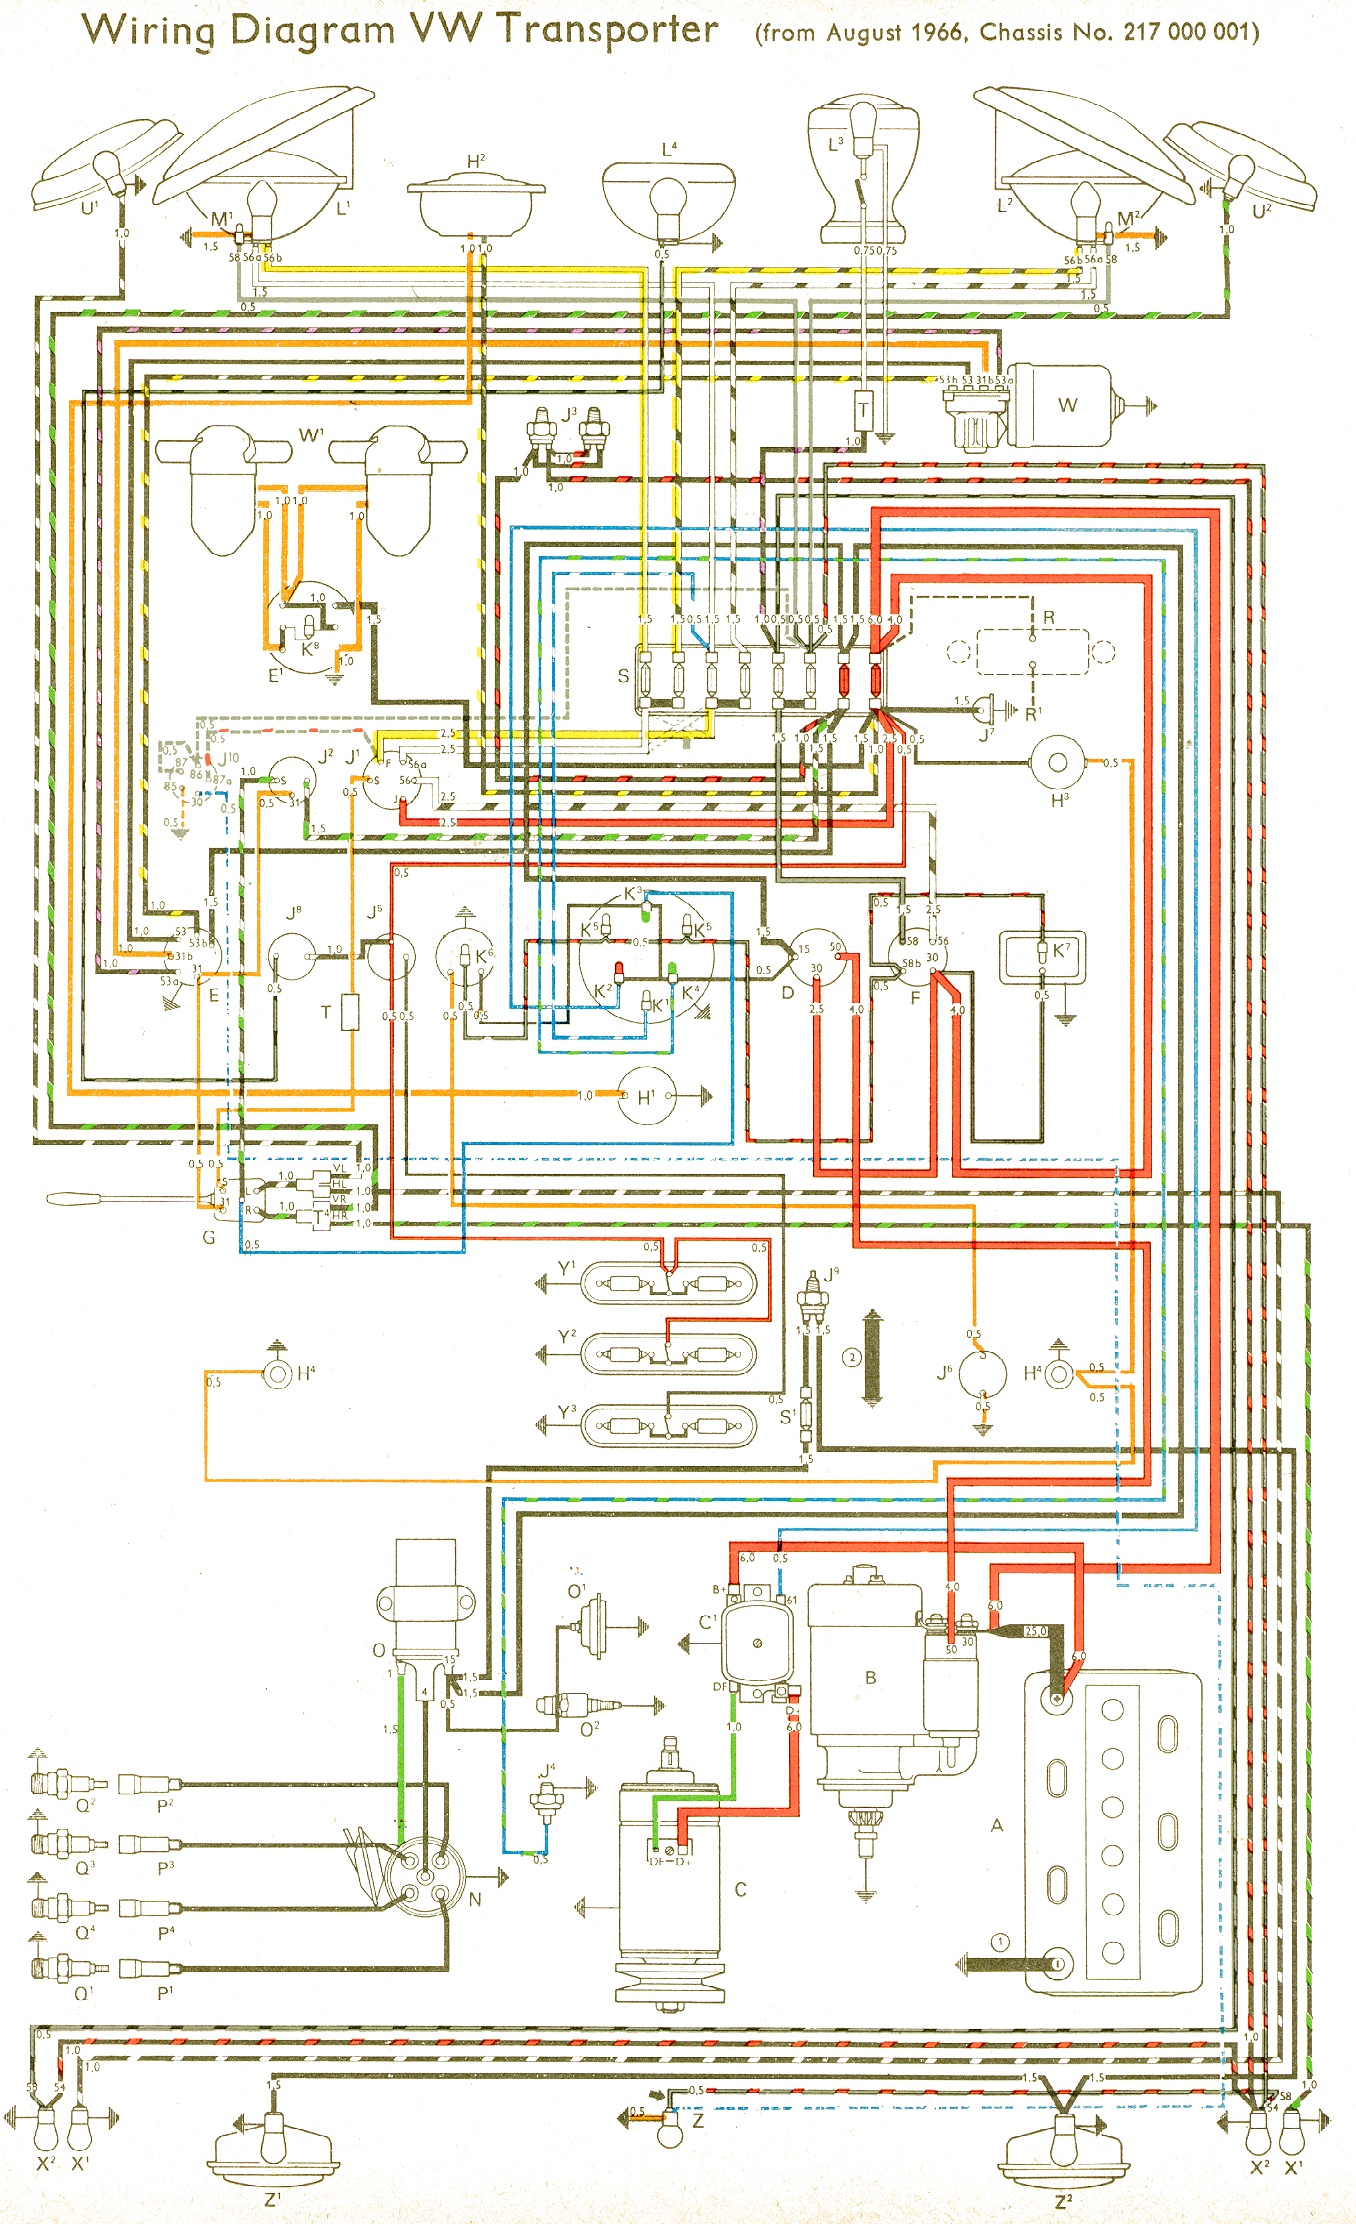 1971 chevelle radio wiring diagram 2003 vw jetta monsoon 70 coil 1985 ford bronco 351 ignition